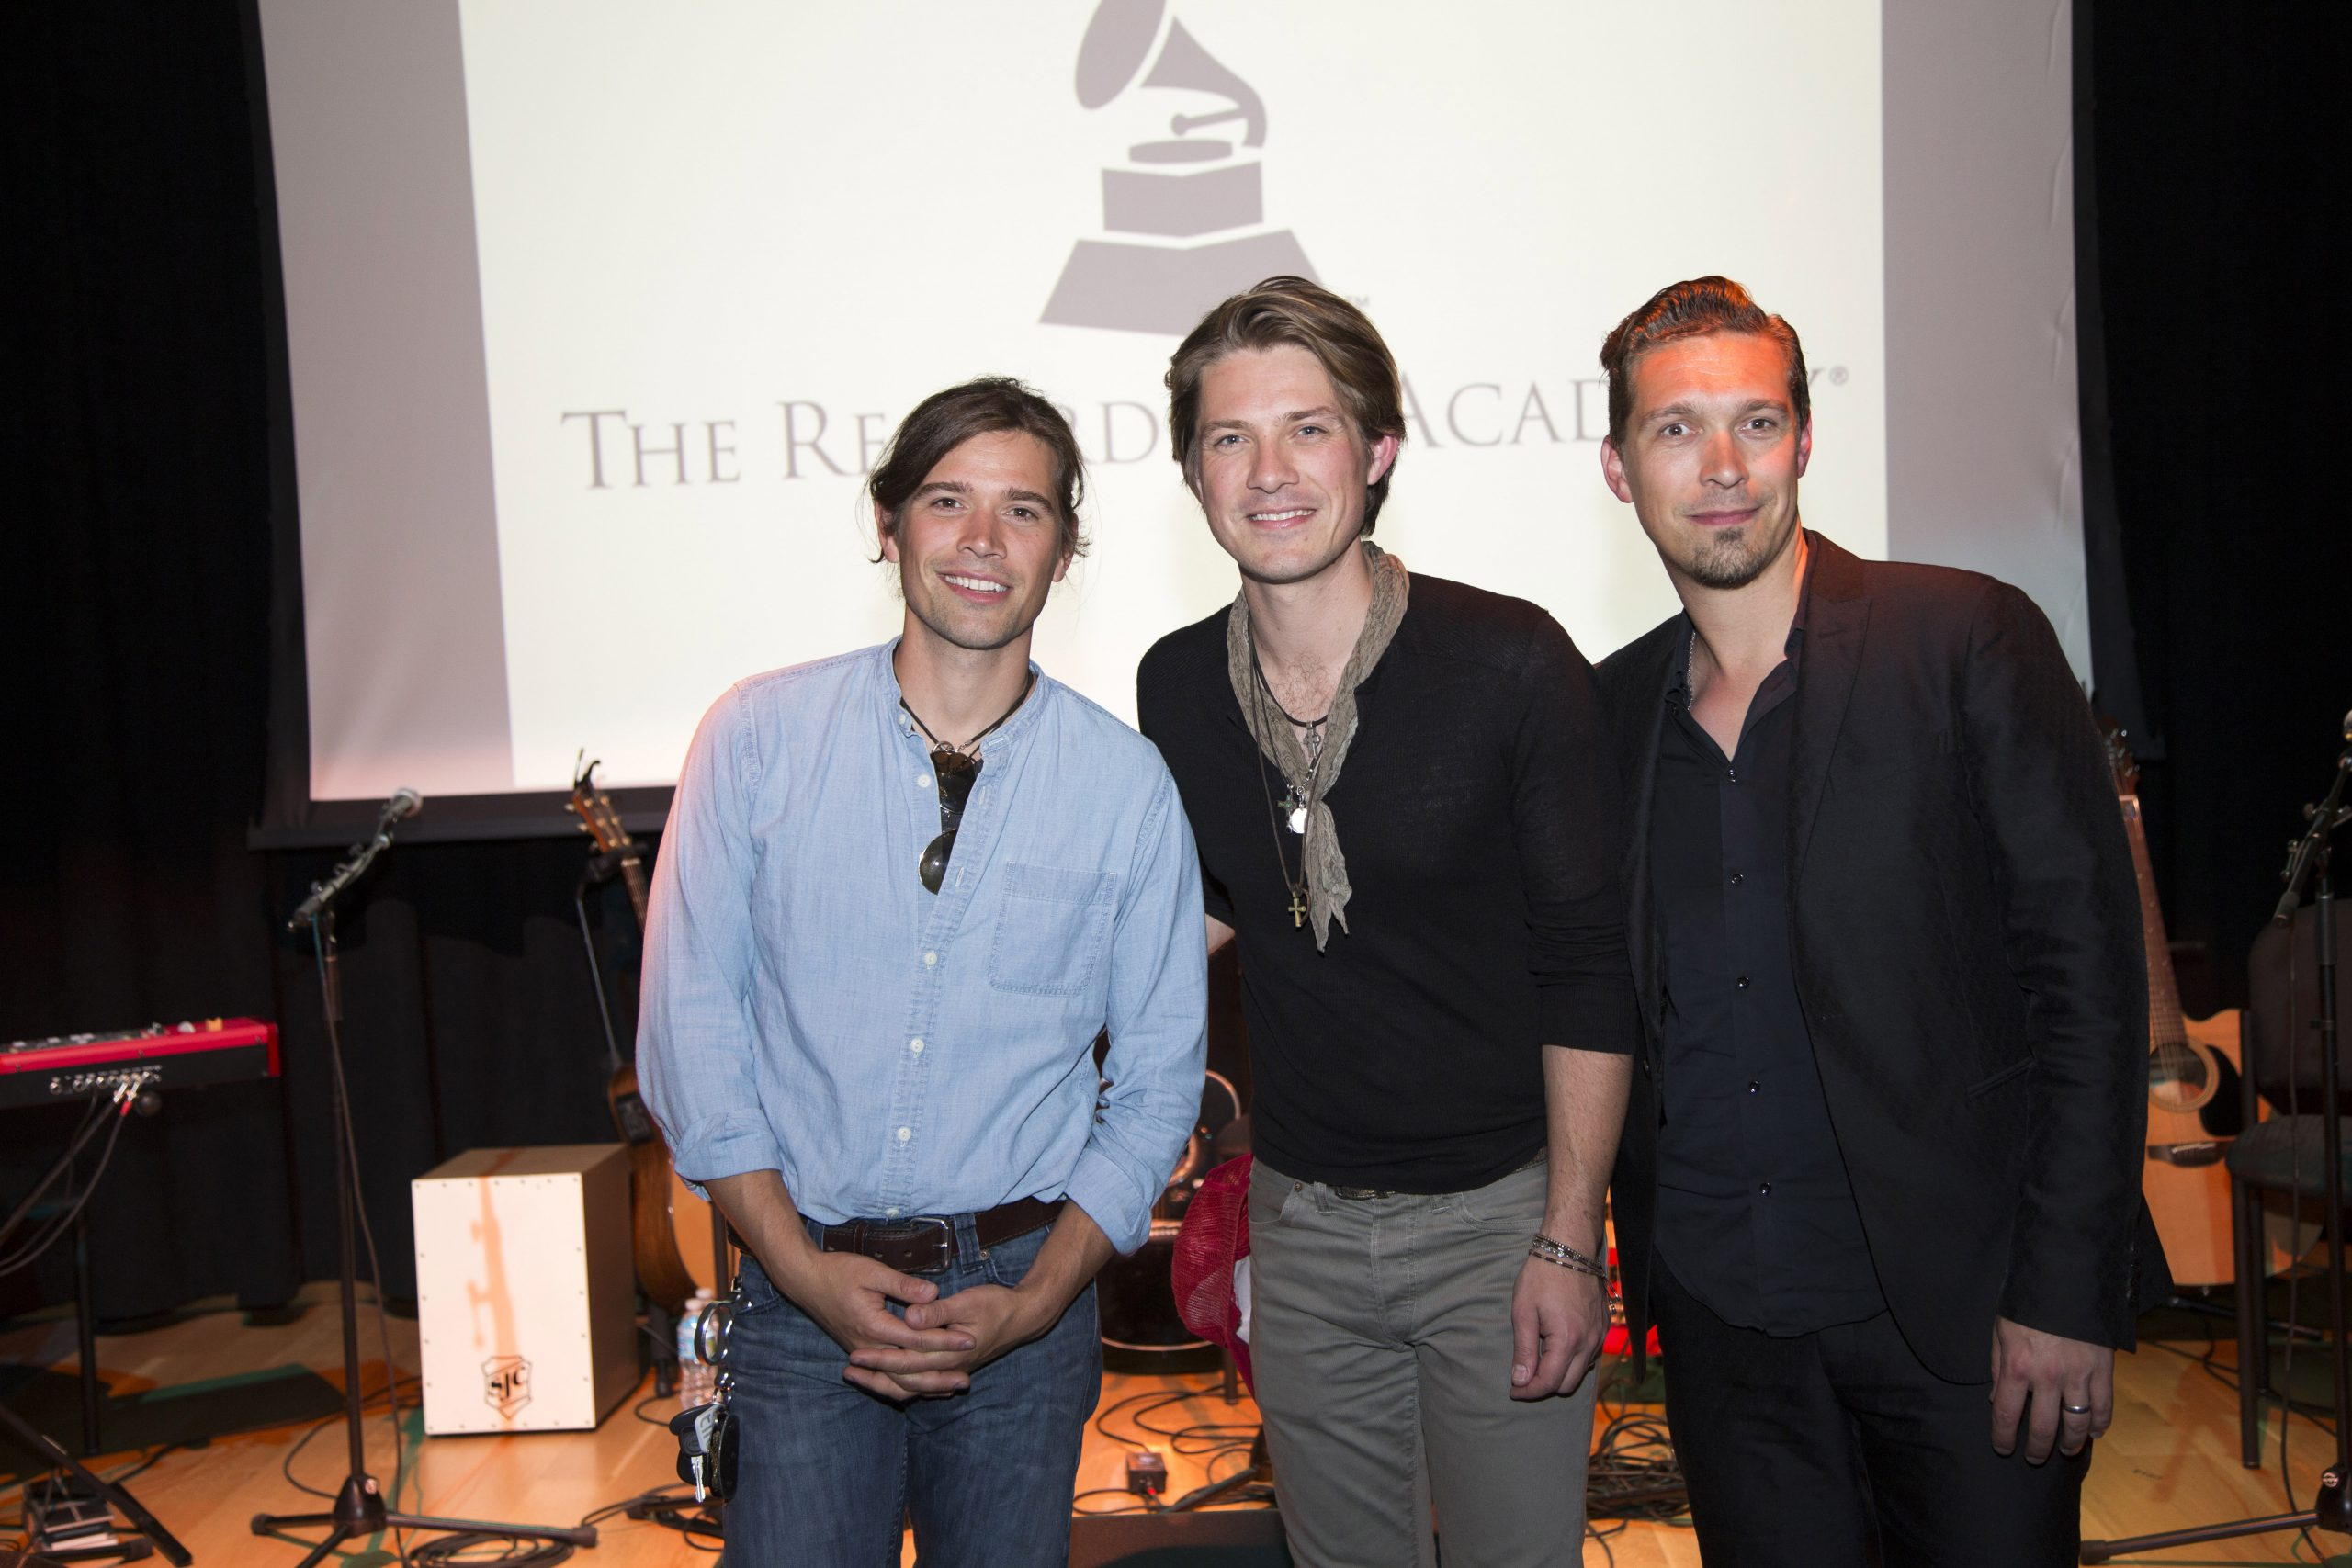 HANSON has a new song and it's pretty damn catchy! [LISTEN]